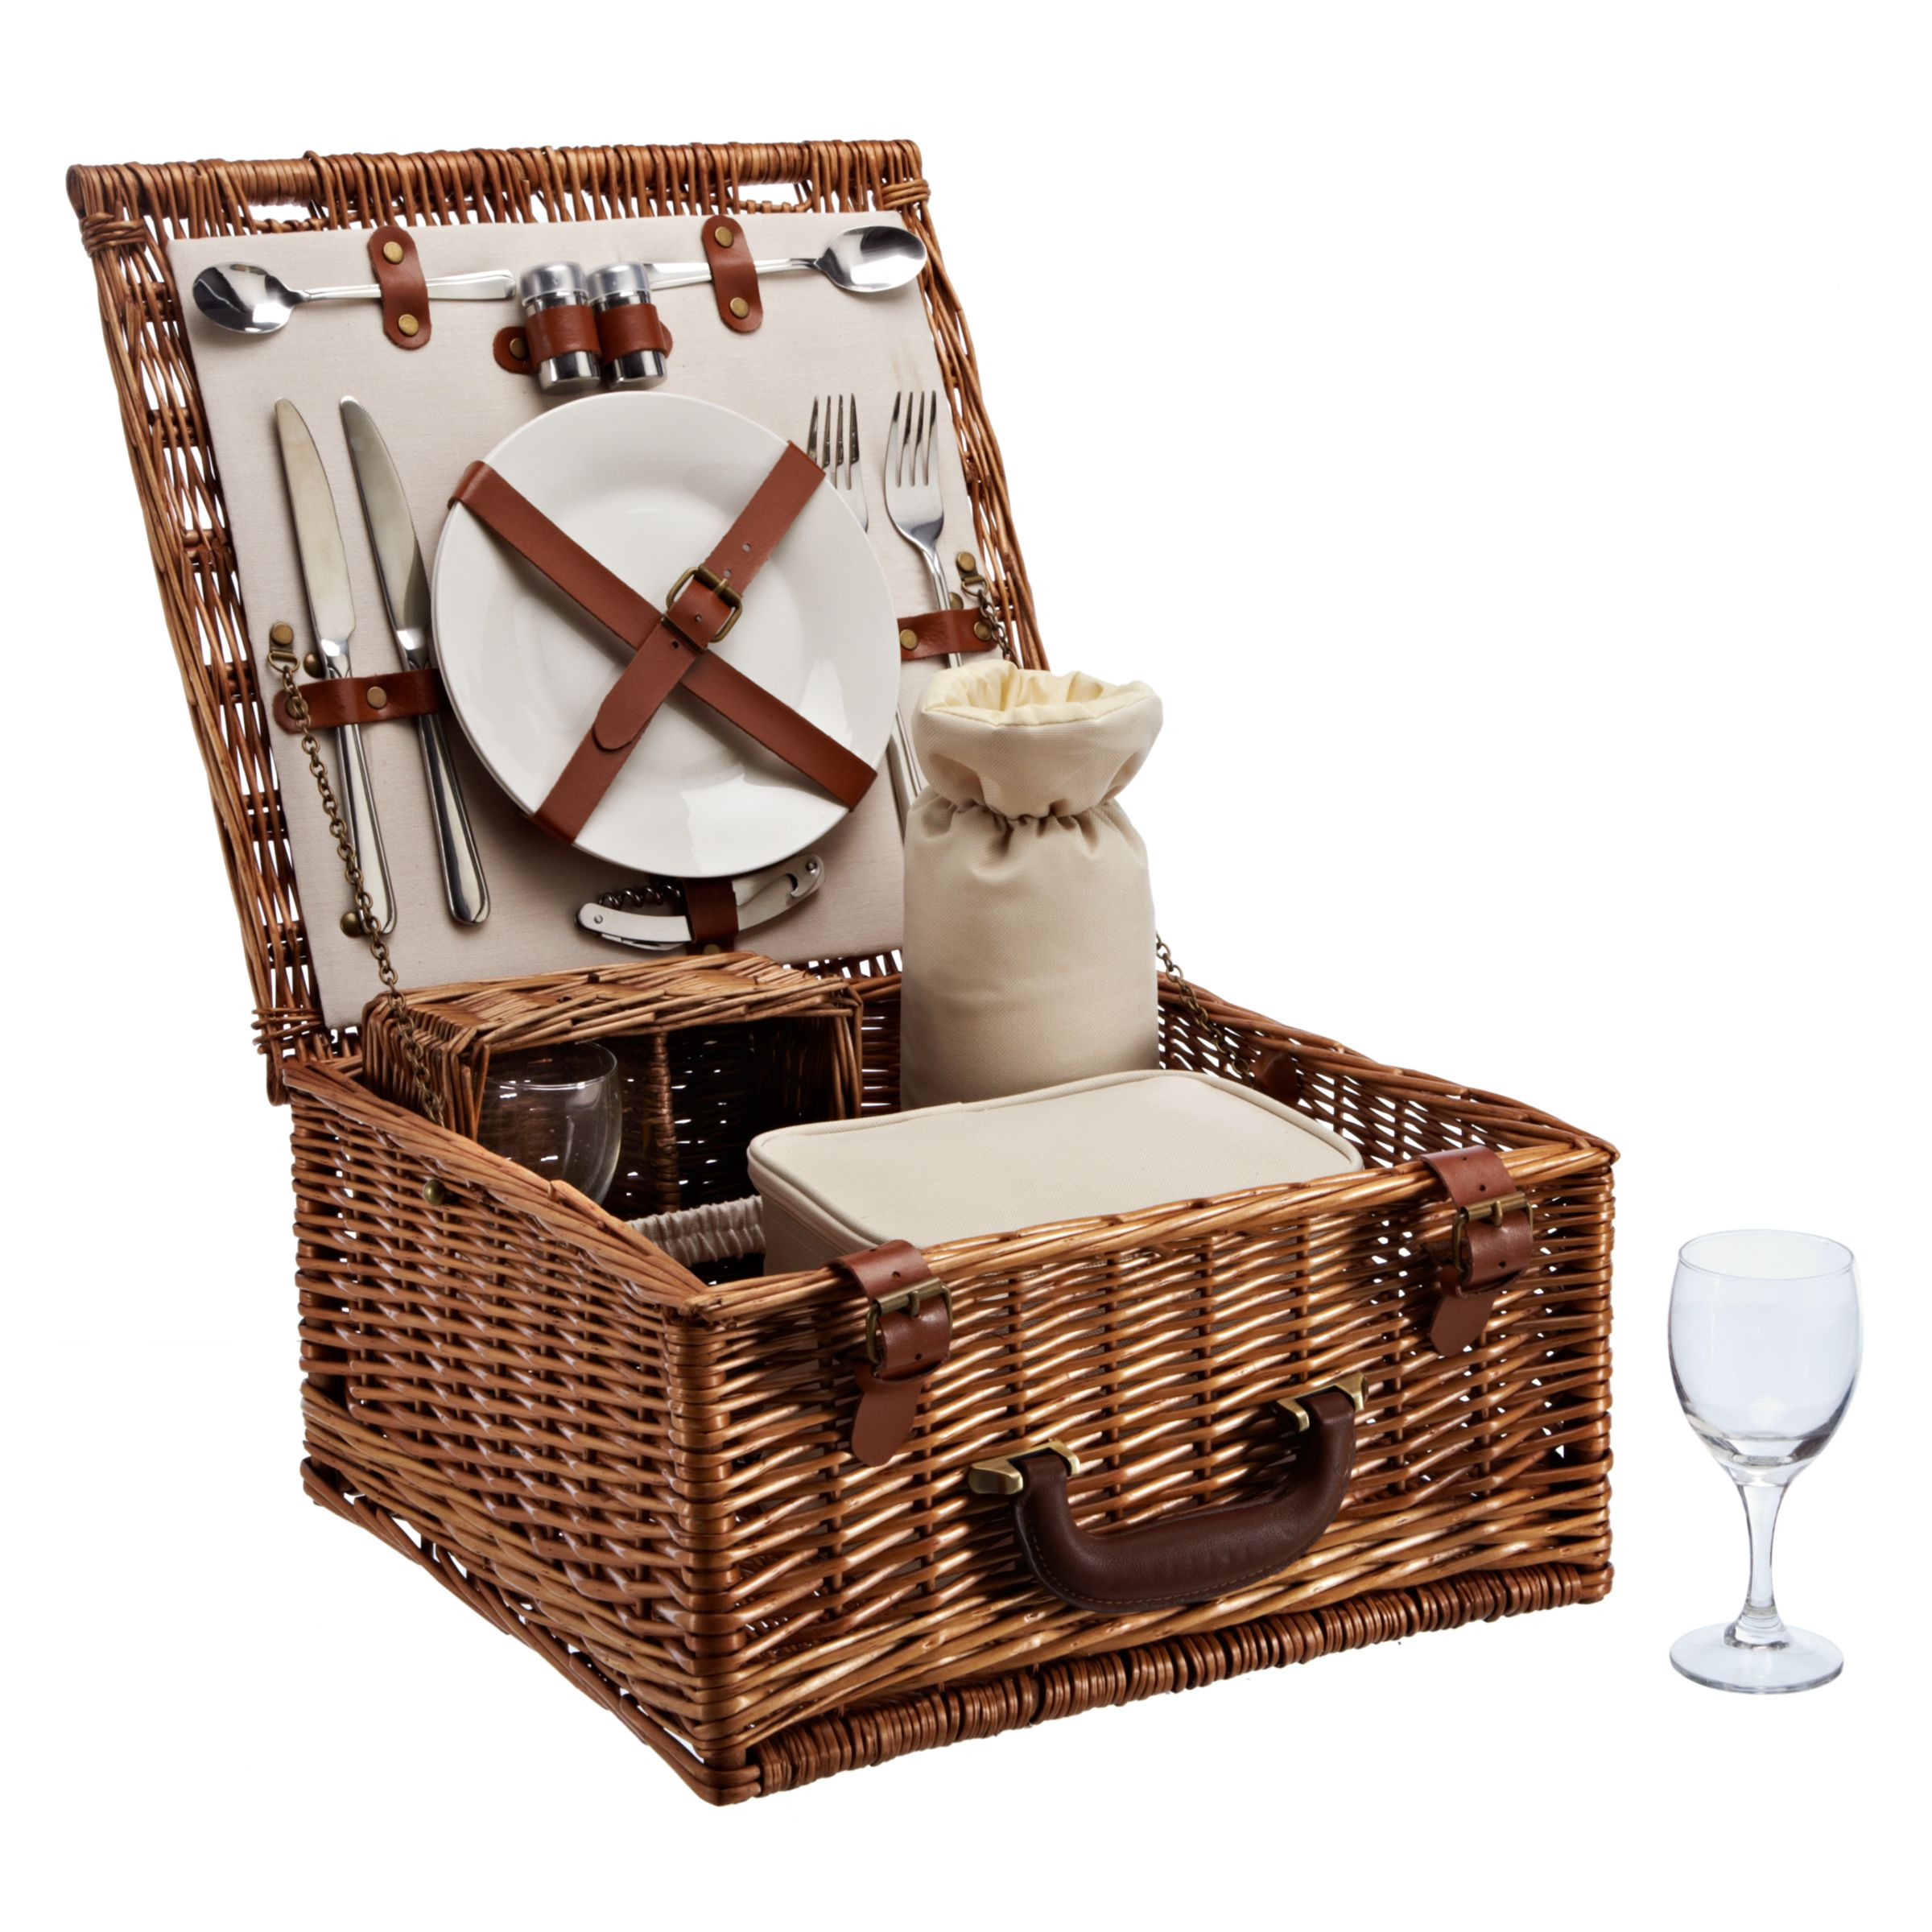 John Lewis Willow Luxury Picnic Hamper, 2 Persons